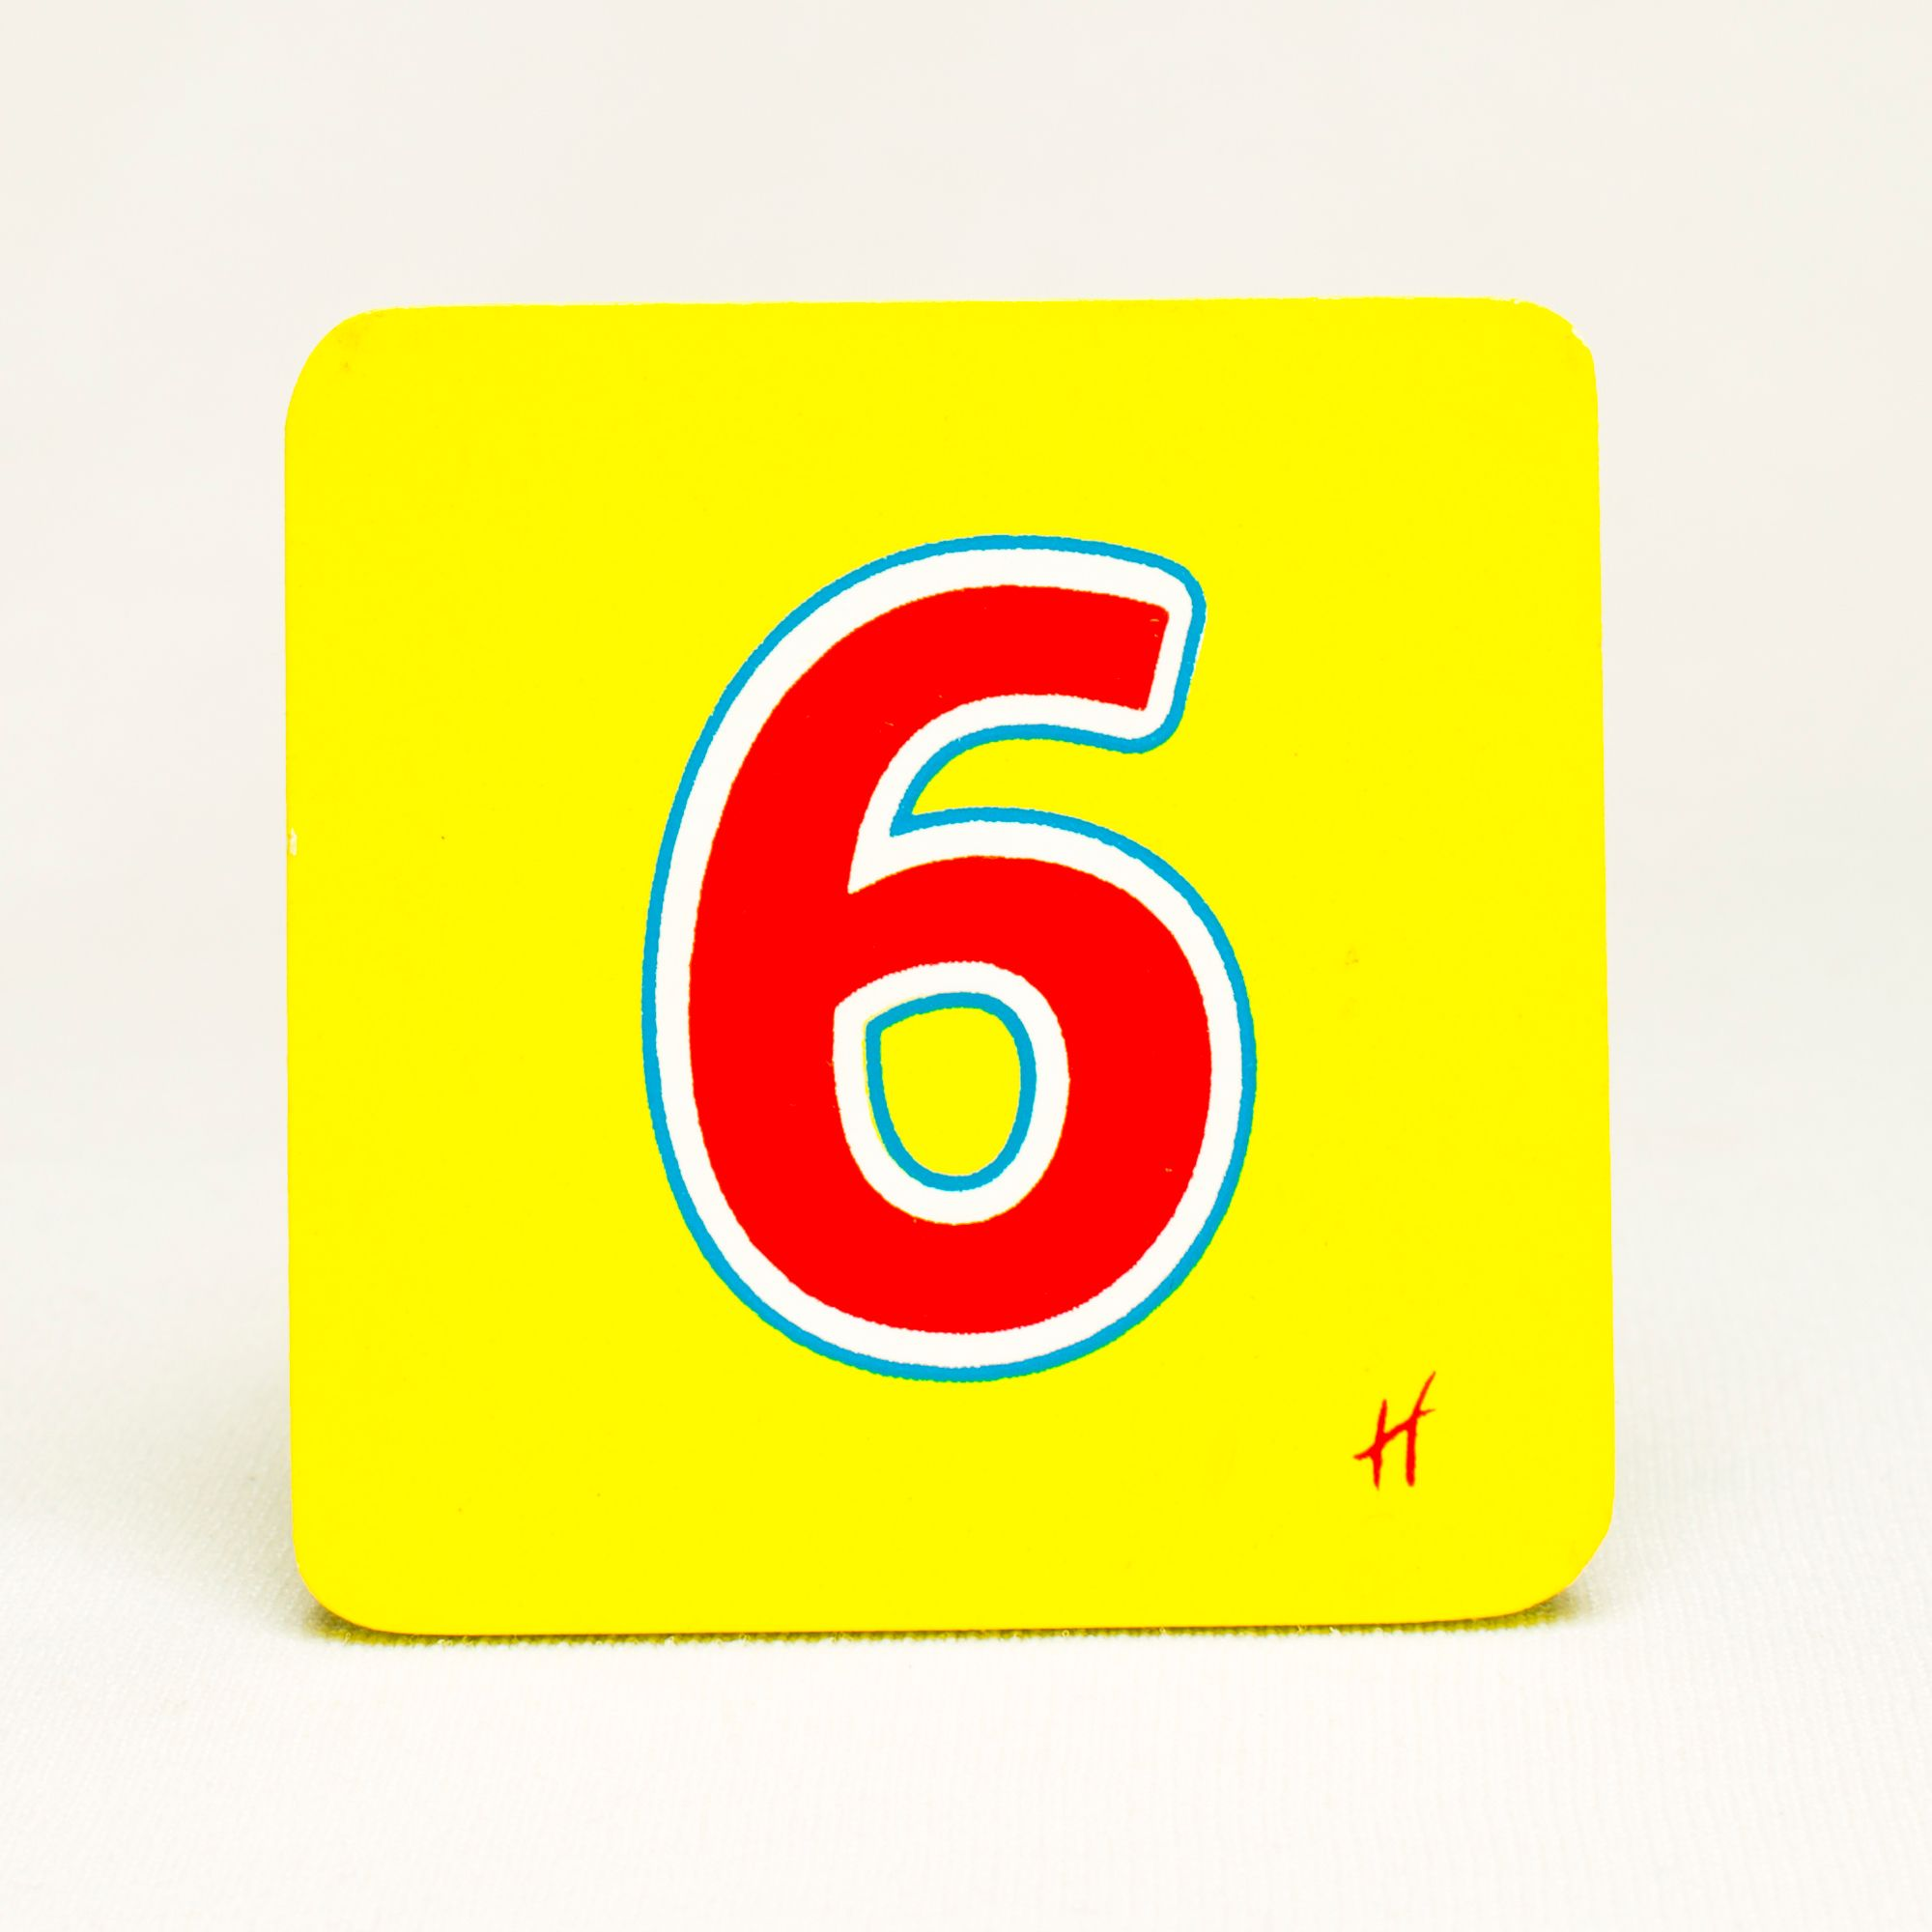 Hamleys Wooden Number 6